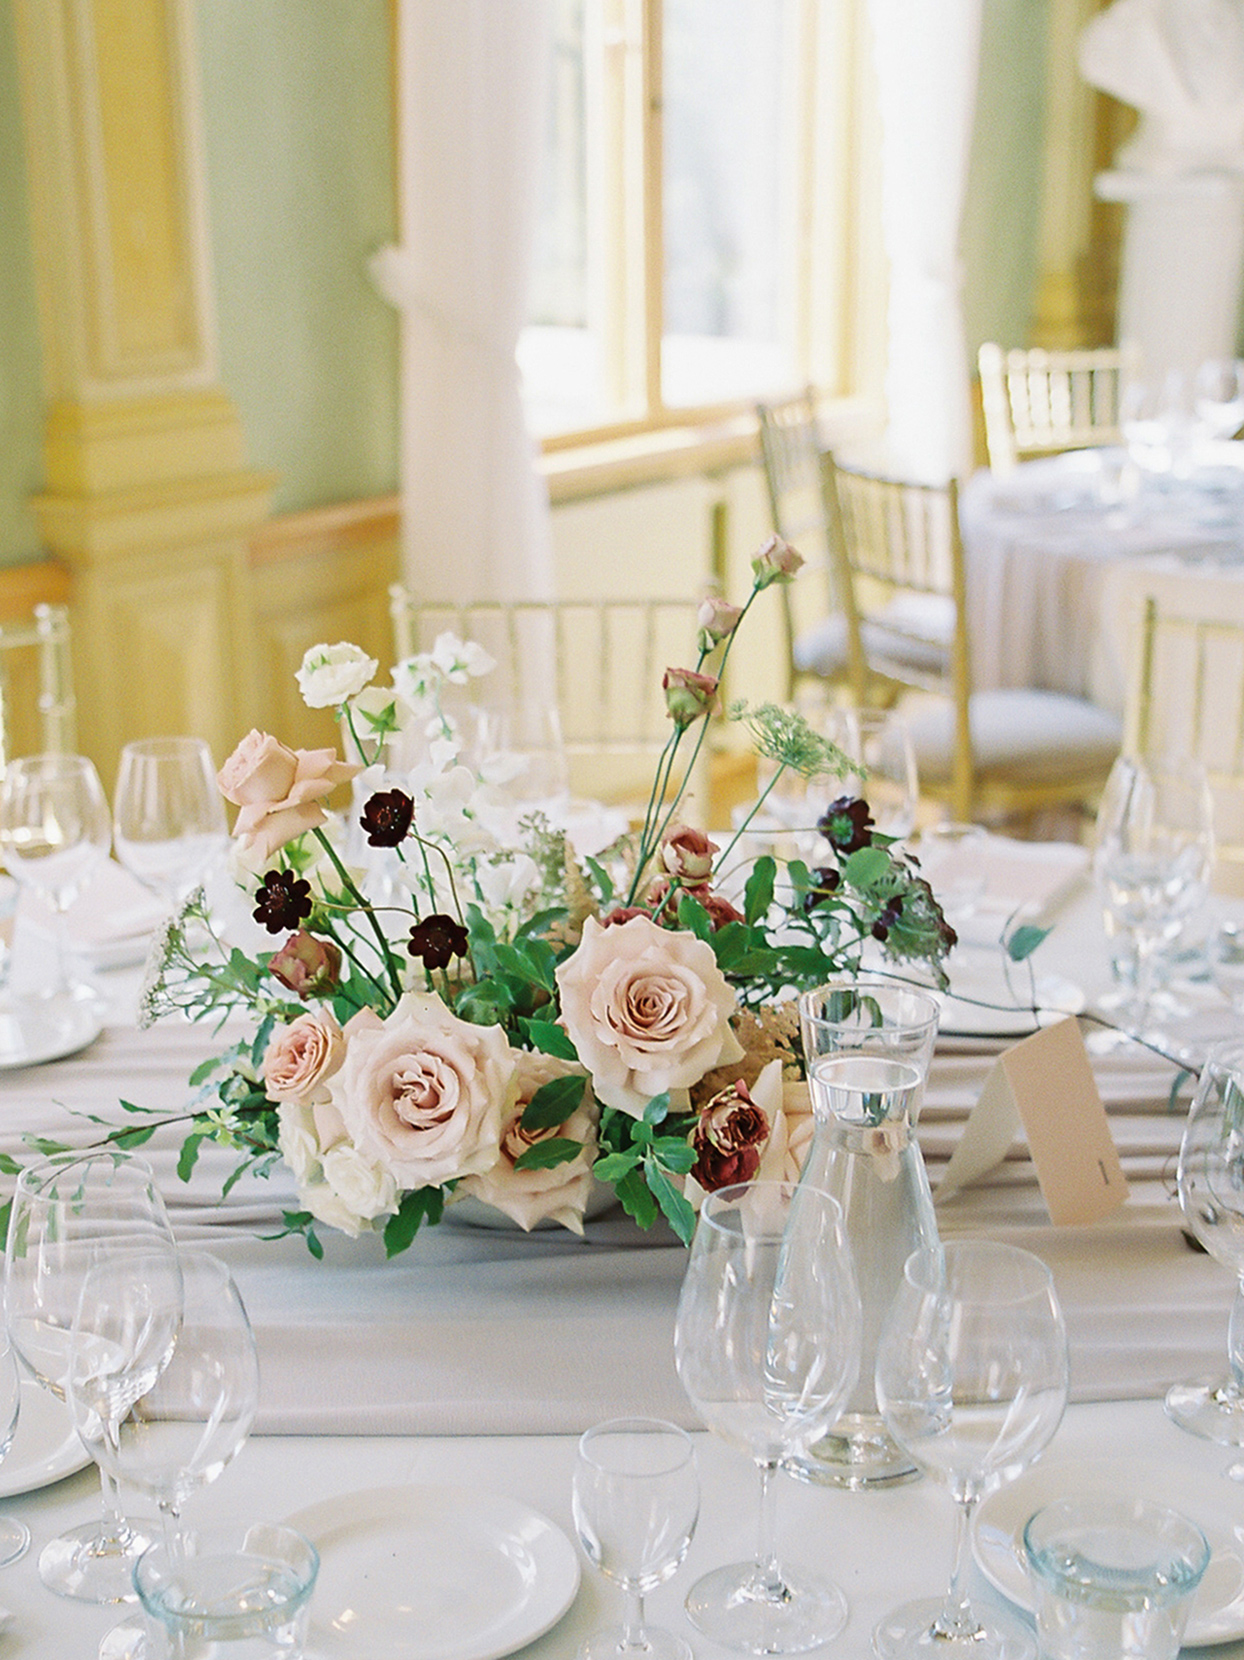 laura alexander wedding floral centerpiece